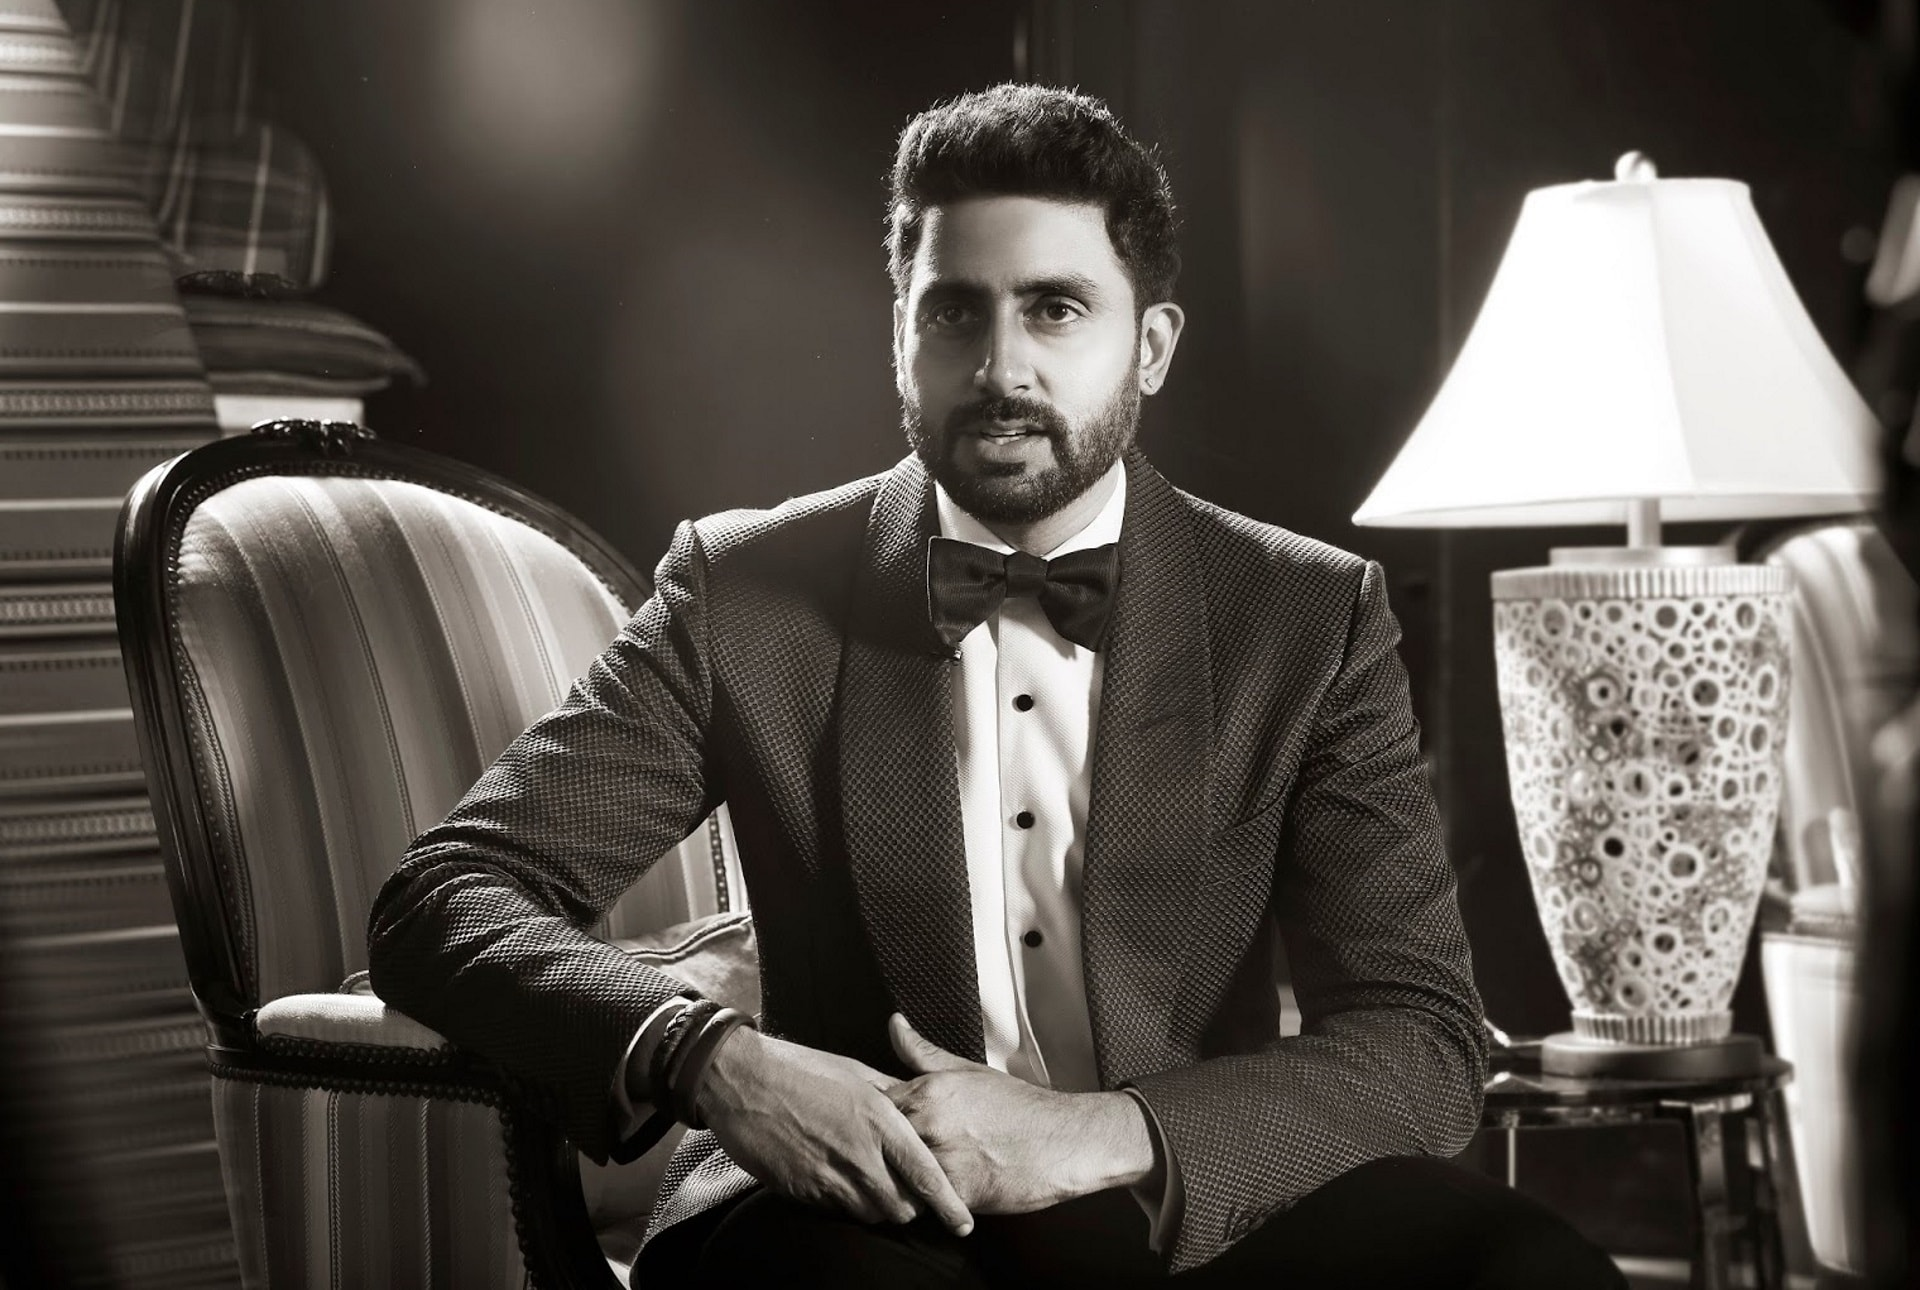 Abhishek Bachchan HD Wallpapers | 7wallpapers net